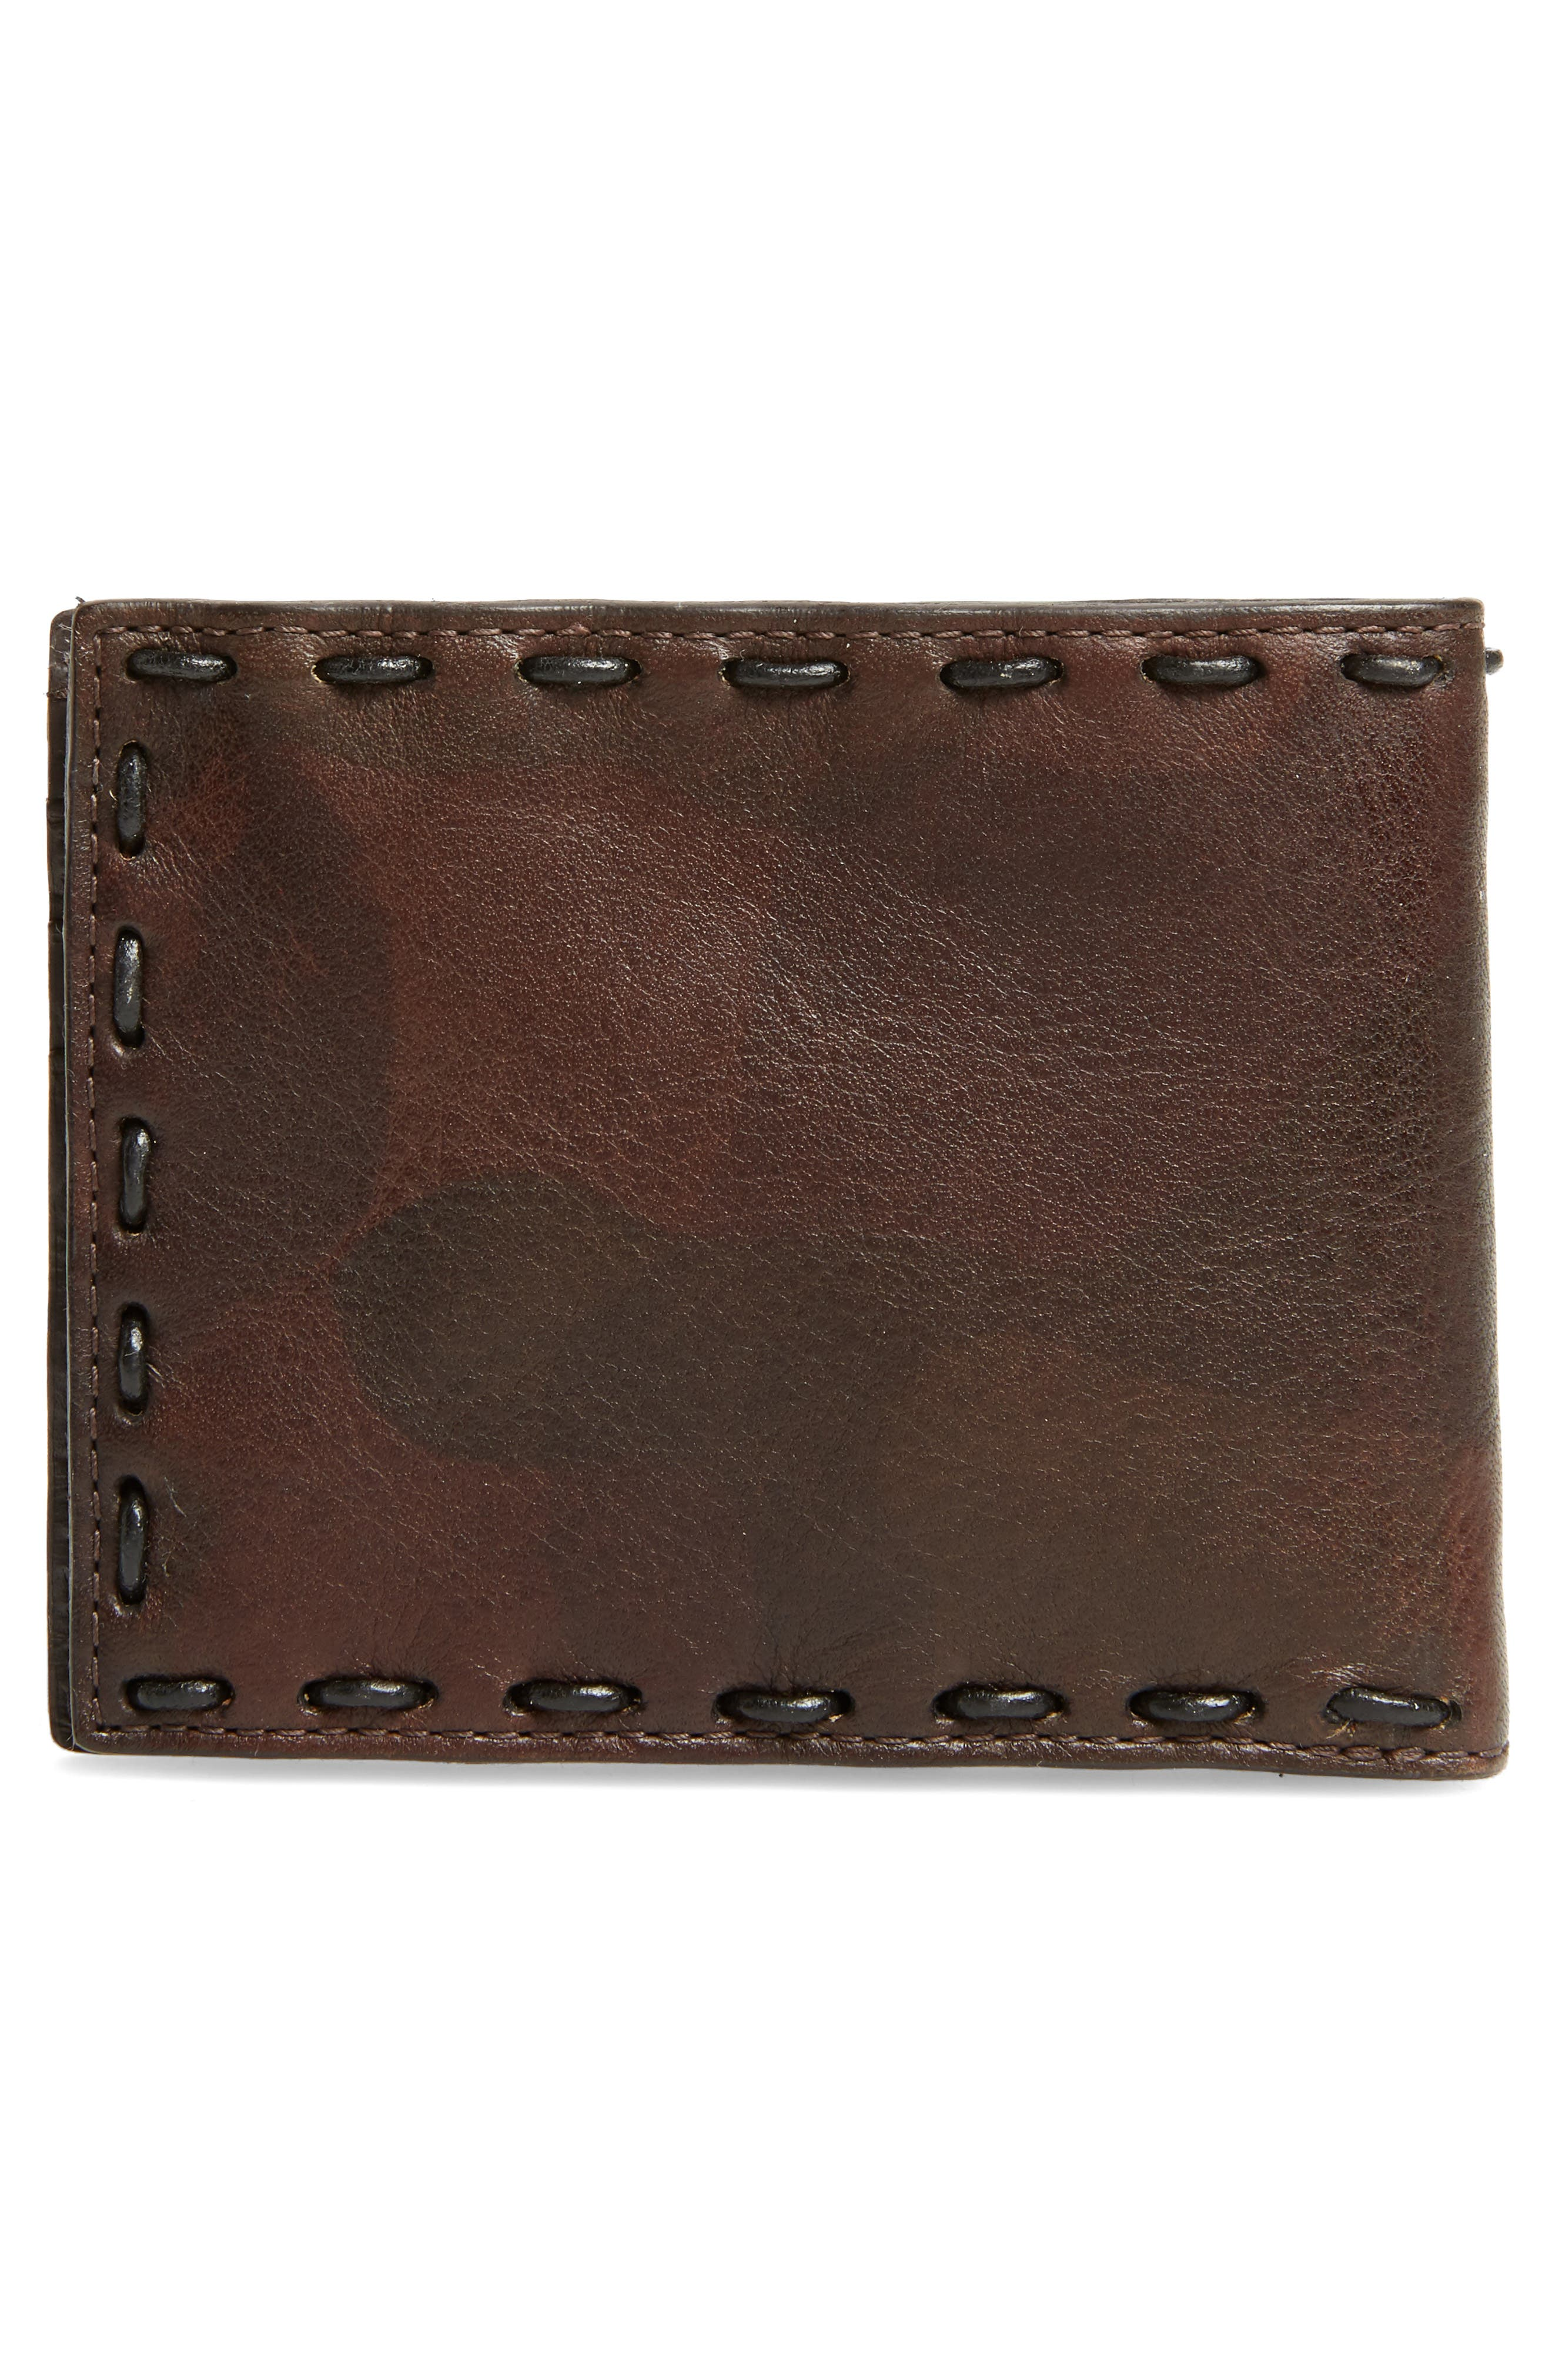 Marble Pickstitched Leather Wallet,                             Alternate thumbnail 3, color,                             Distressed Brown